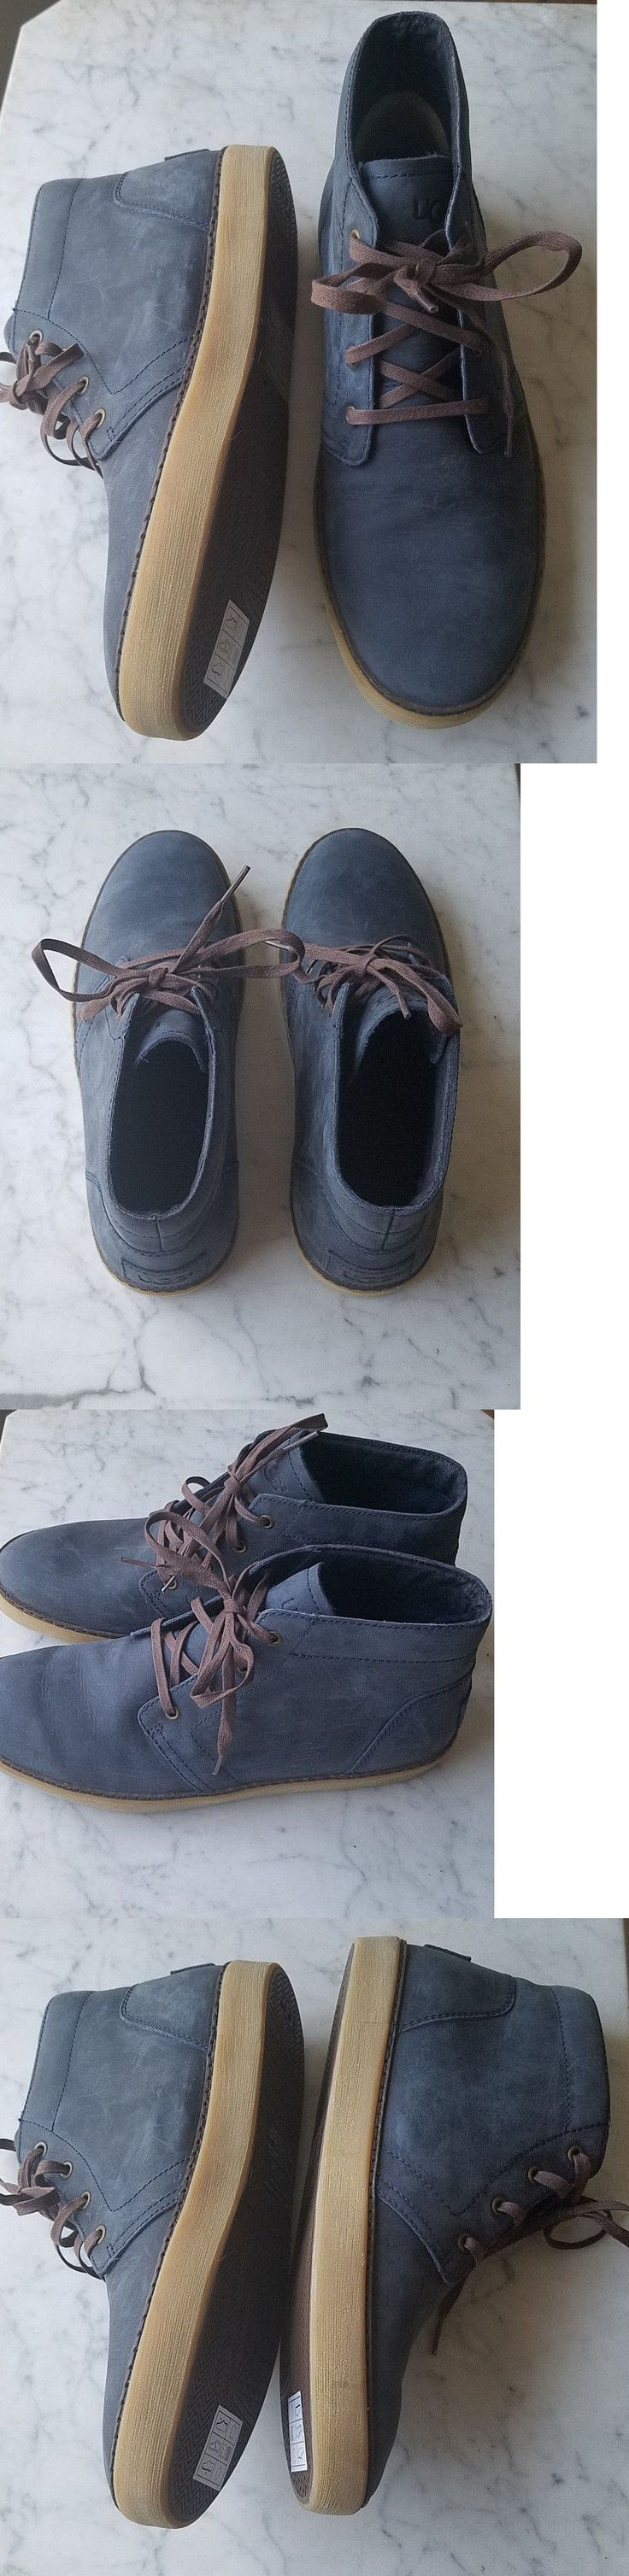 Slippers 11505: New Ugg Australia Alin Chukka Ankle Boot Shoes Mens 9 Navy 1007585 -> BUY IT NOW ONLY: $59.97 on eBay!